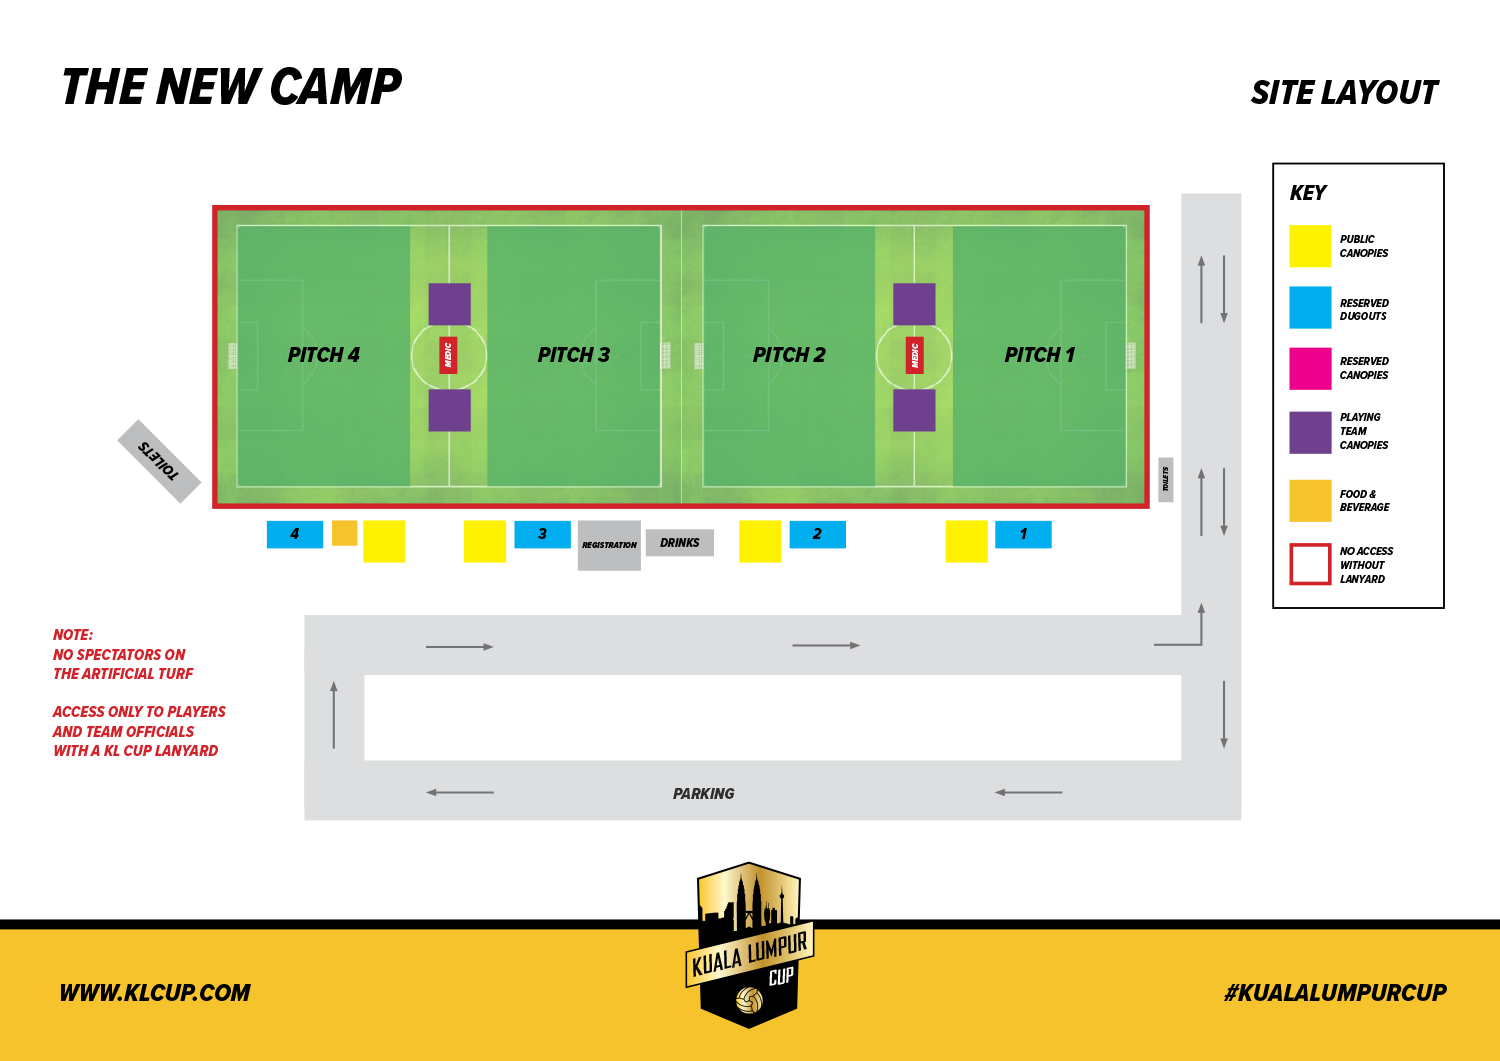 The New Camp site plan